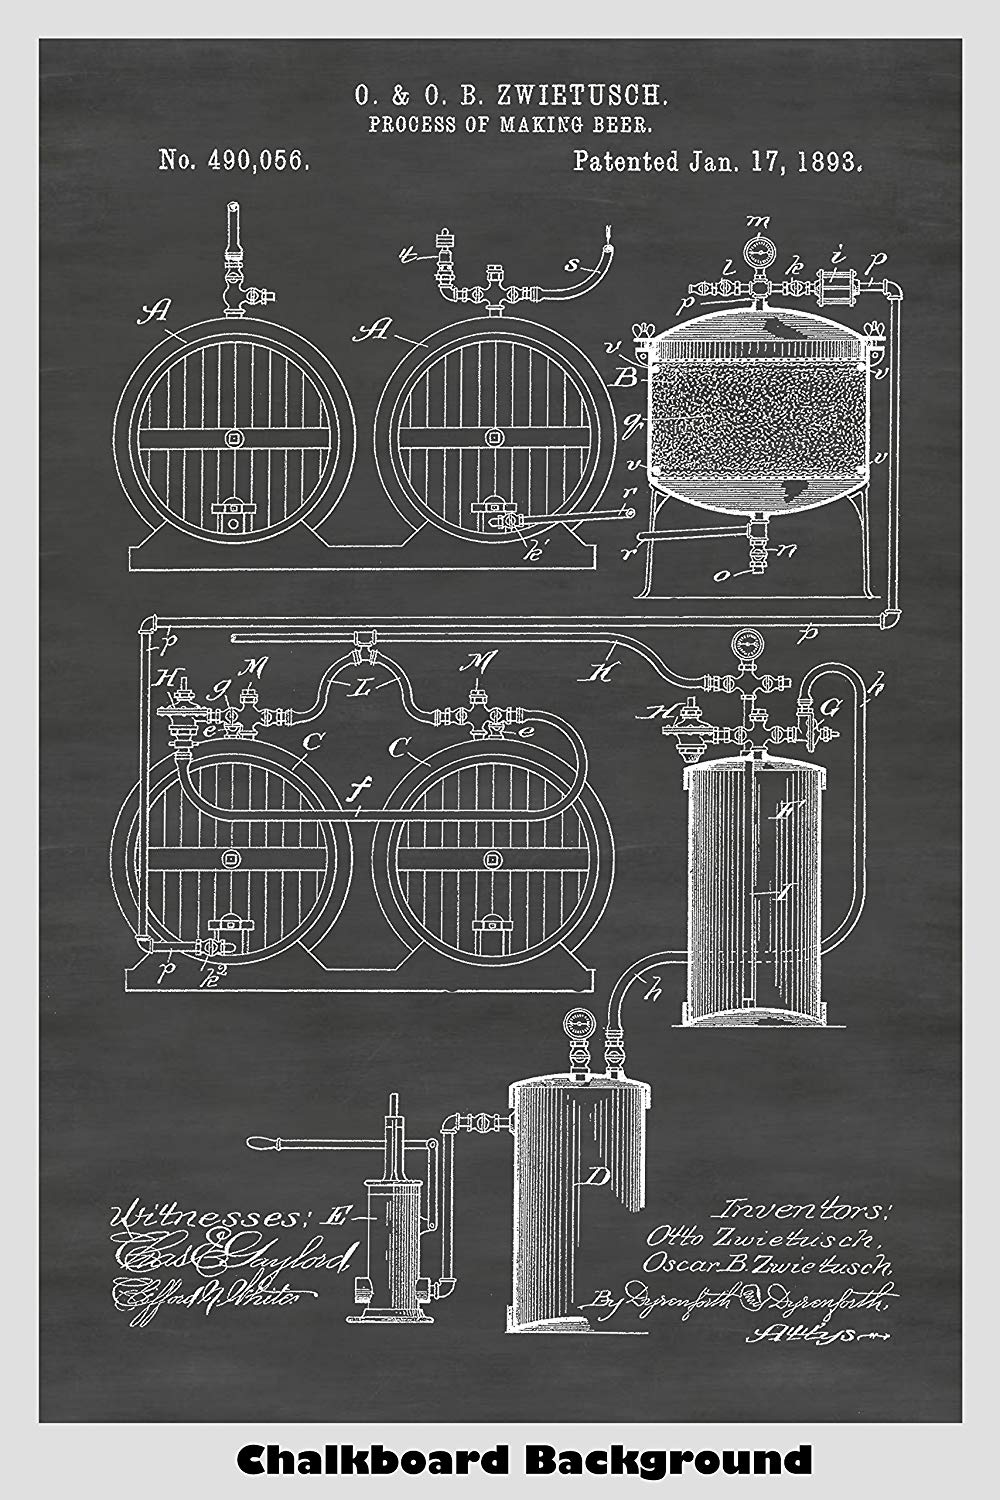 Patent describing a Victorian Era method of making beer